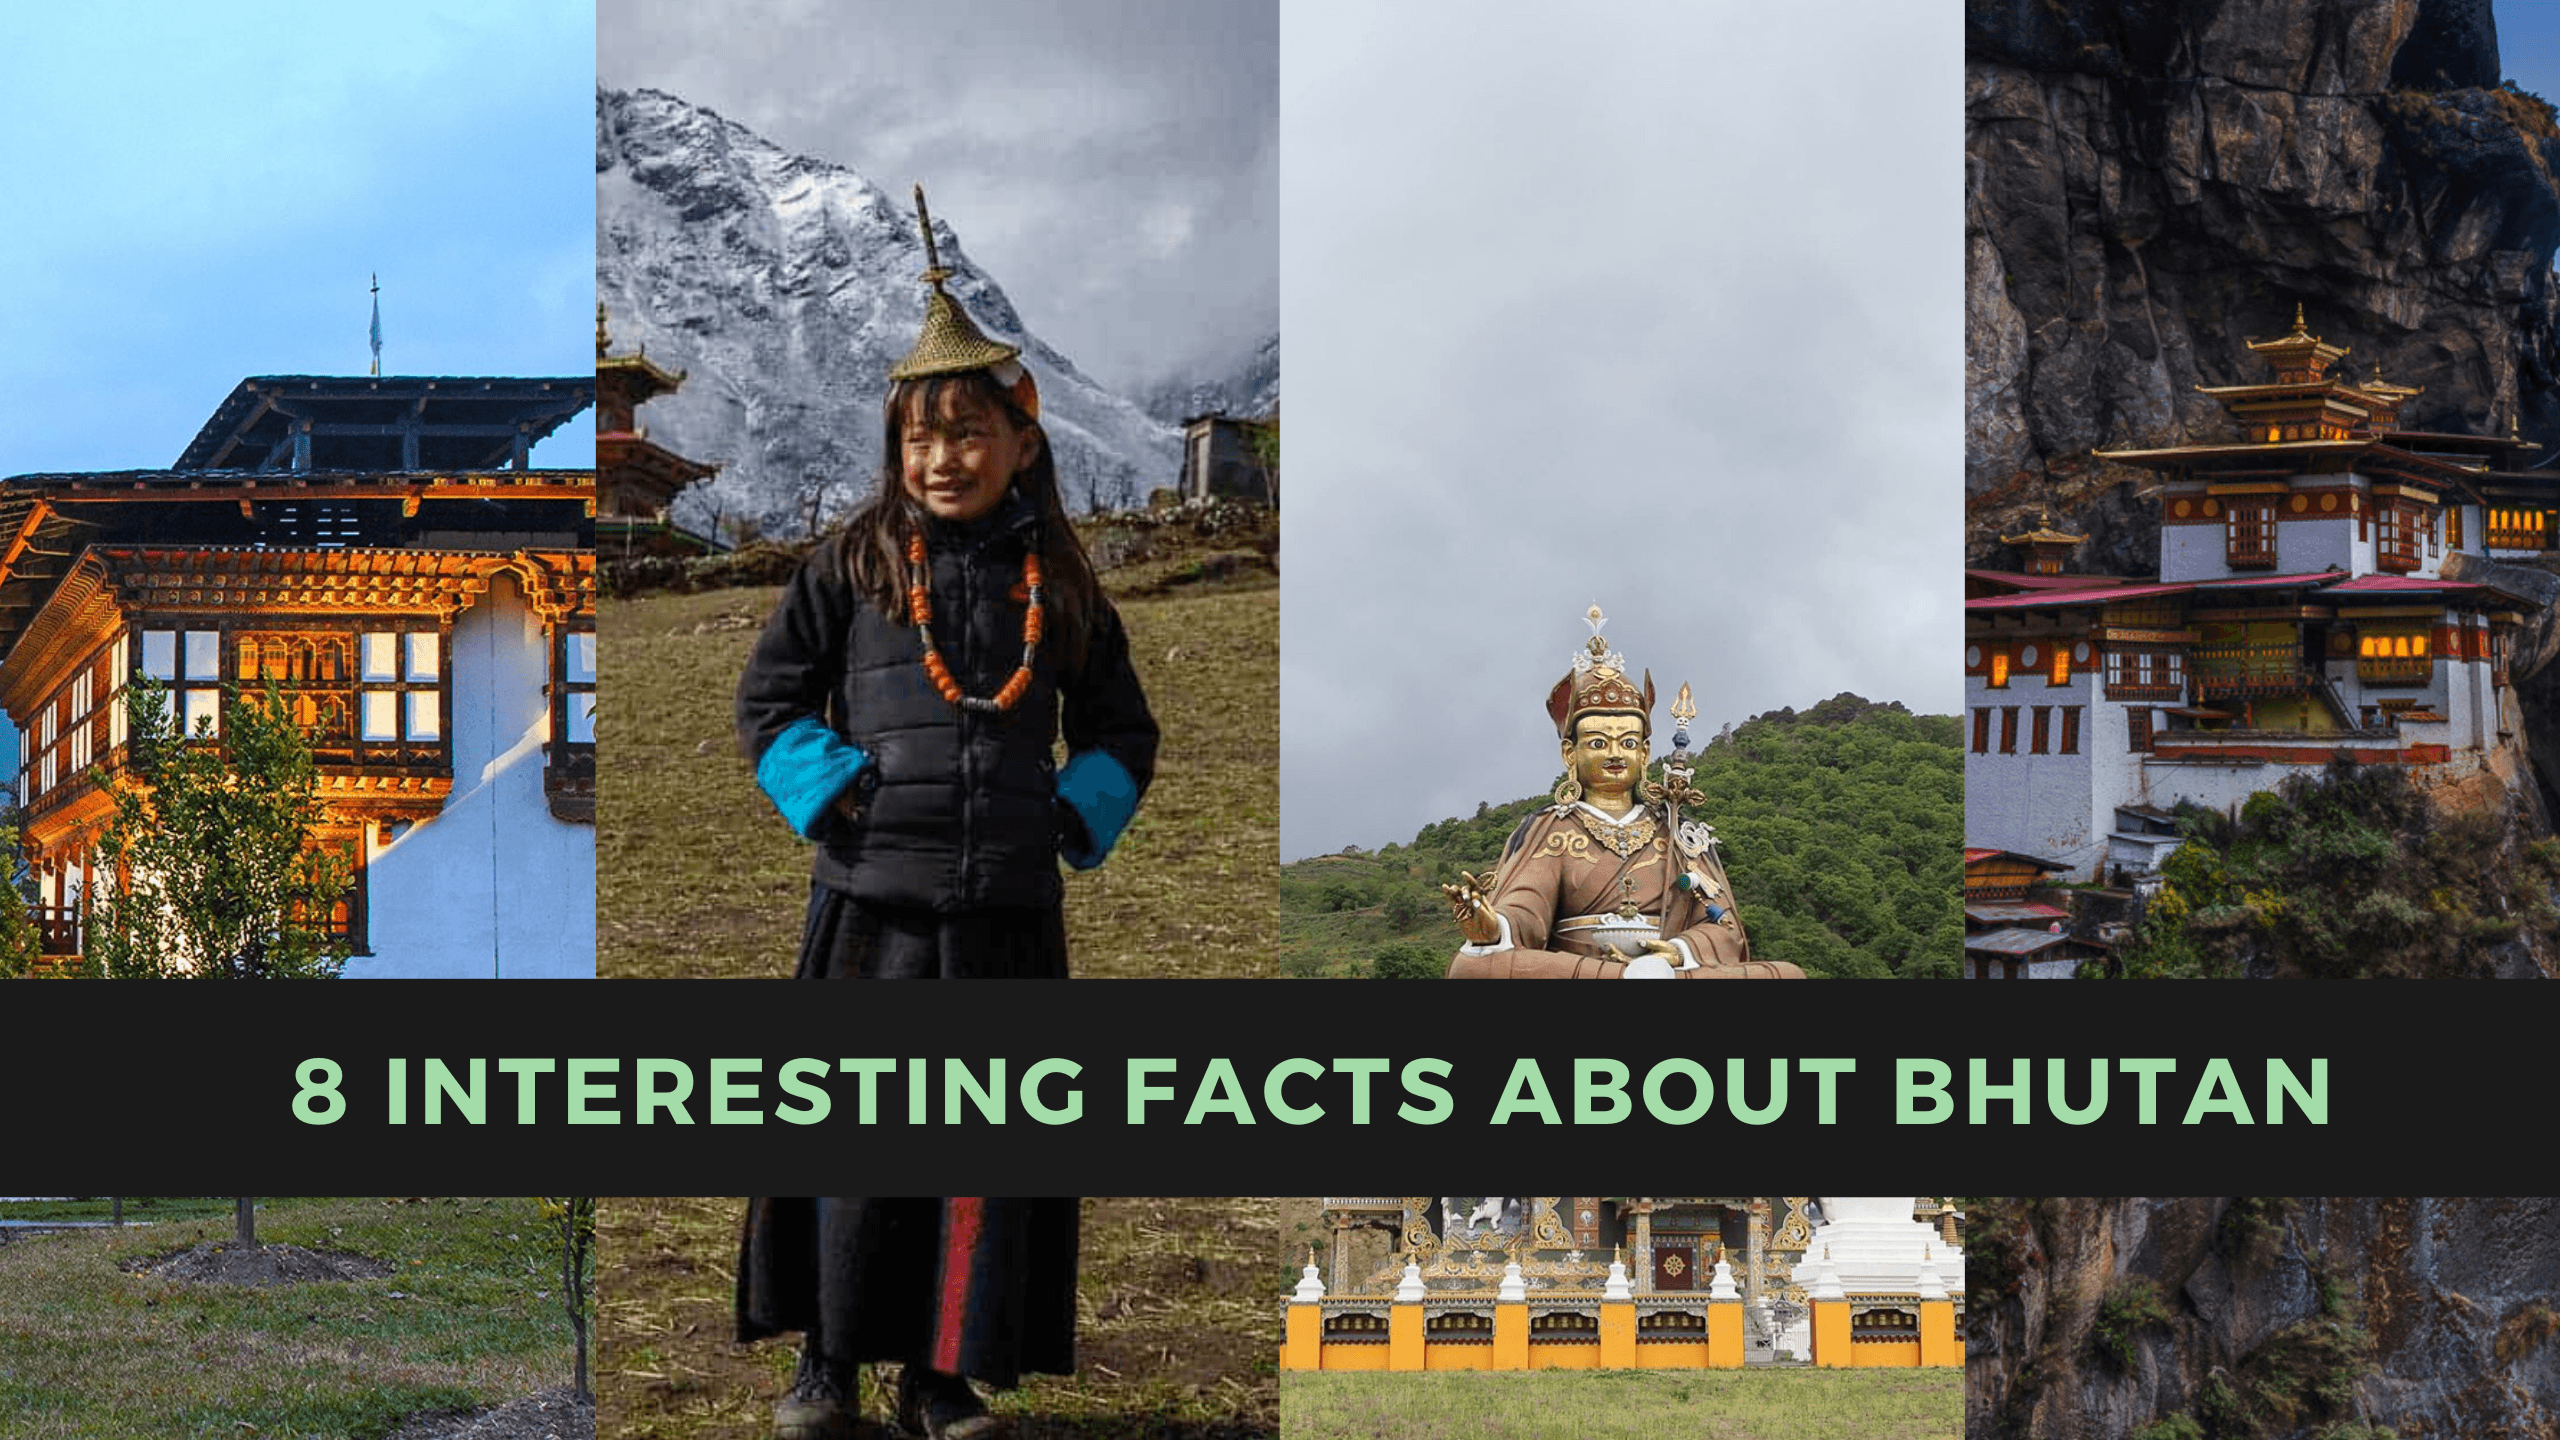 8 Interesting Facts About Bhutan